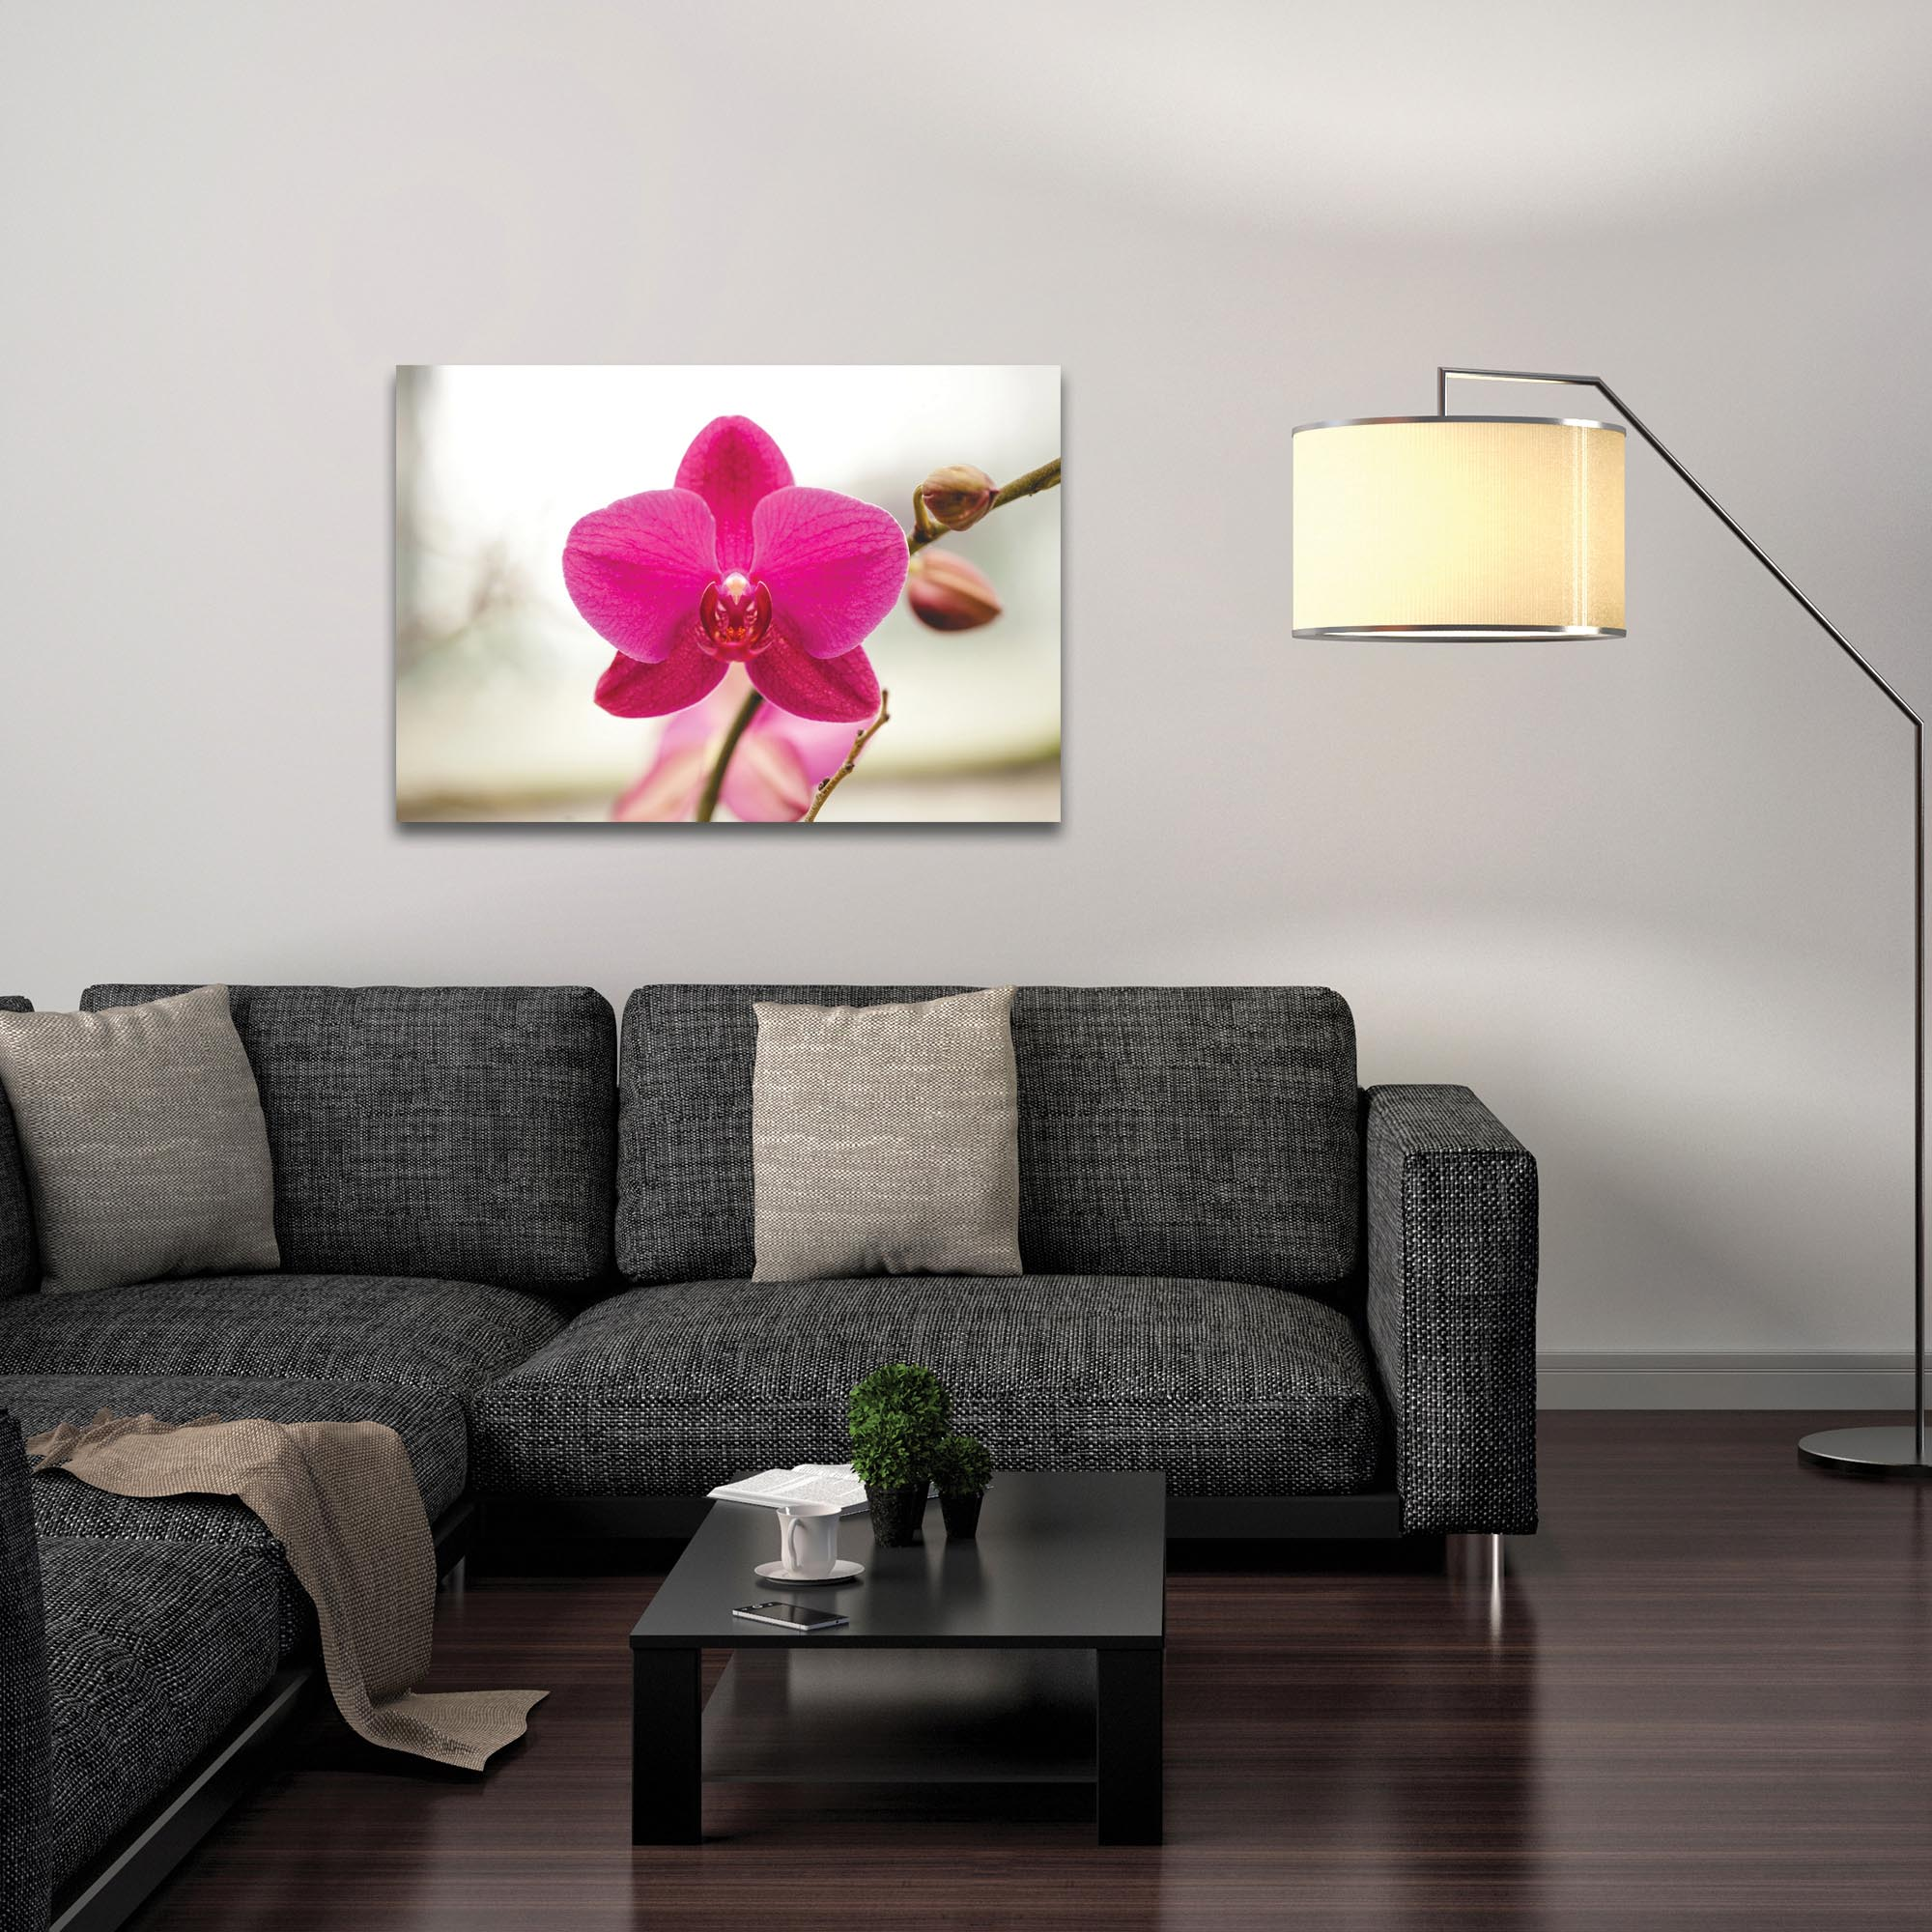 Nature Photography 'Magenta Bloom' - Flower Blossom Art on Metal or Plexiglass - Lifestyle View